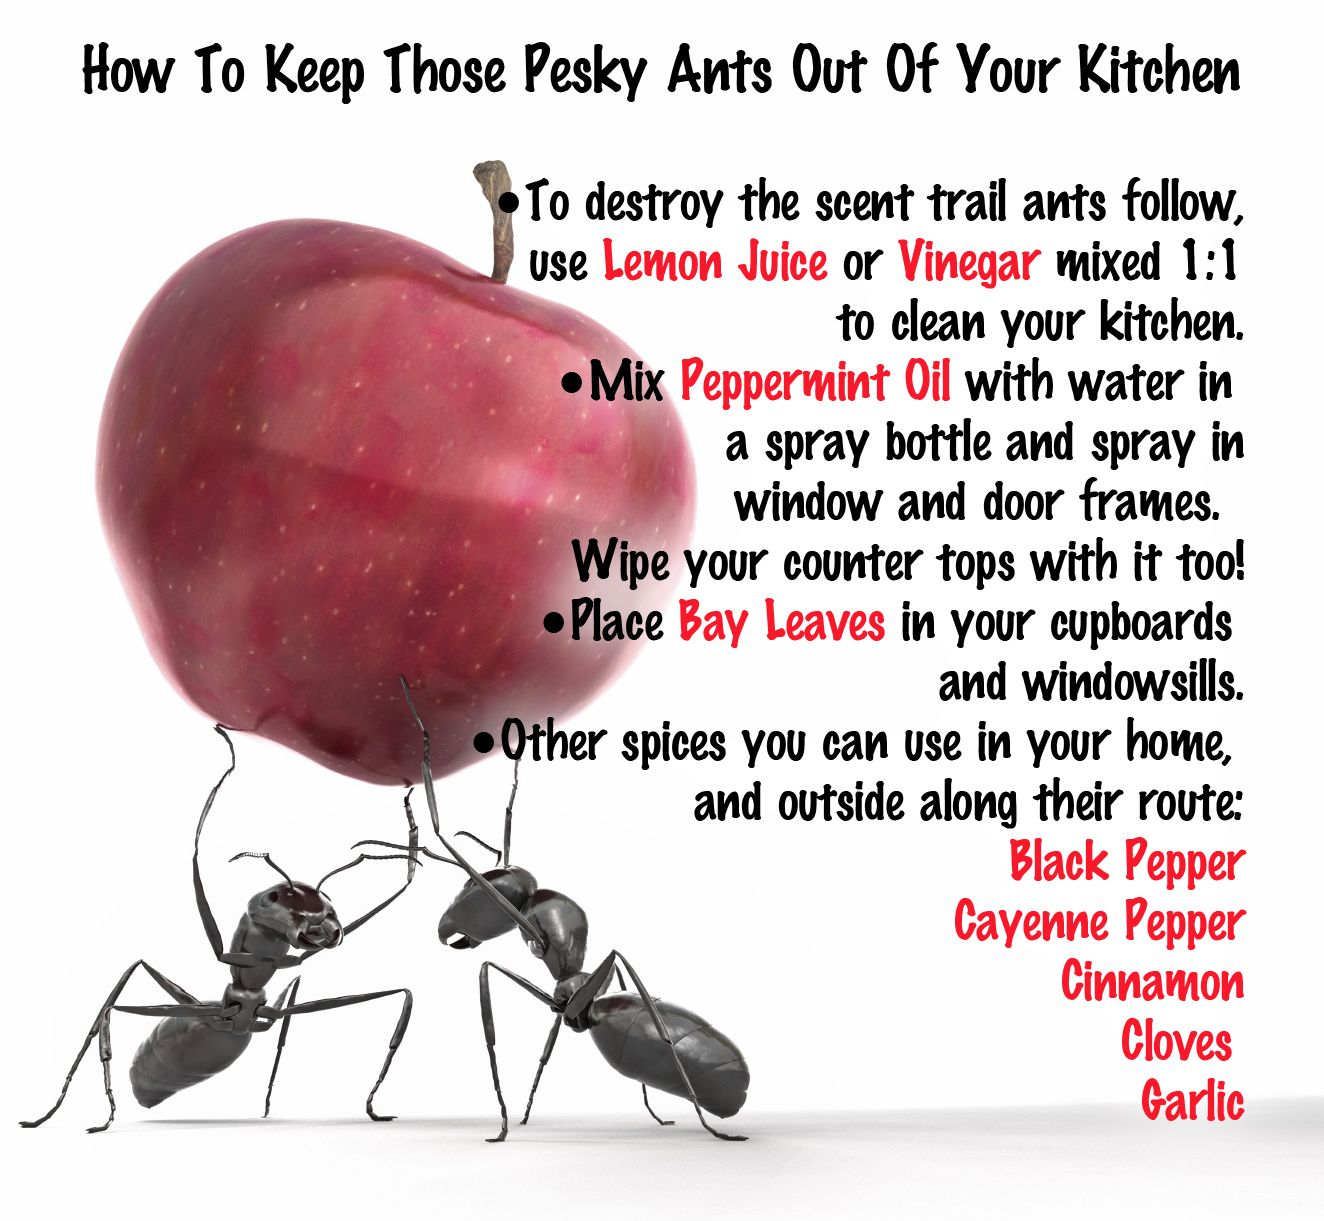 How to keep those pesky ants out of your kitchen